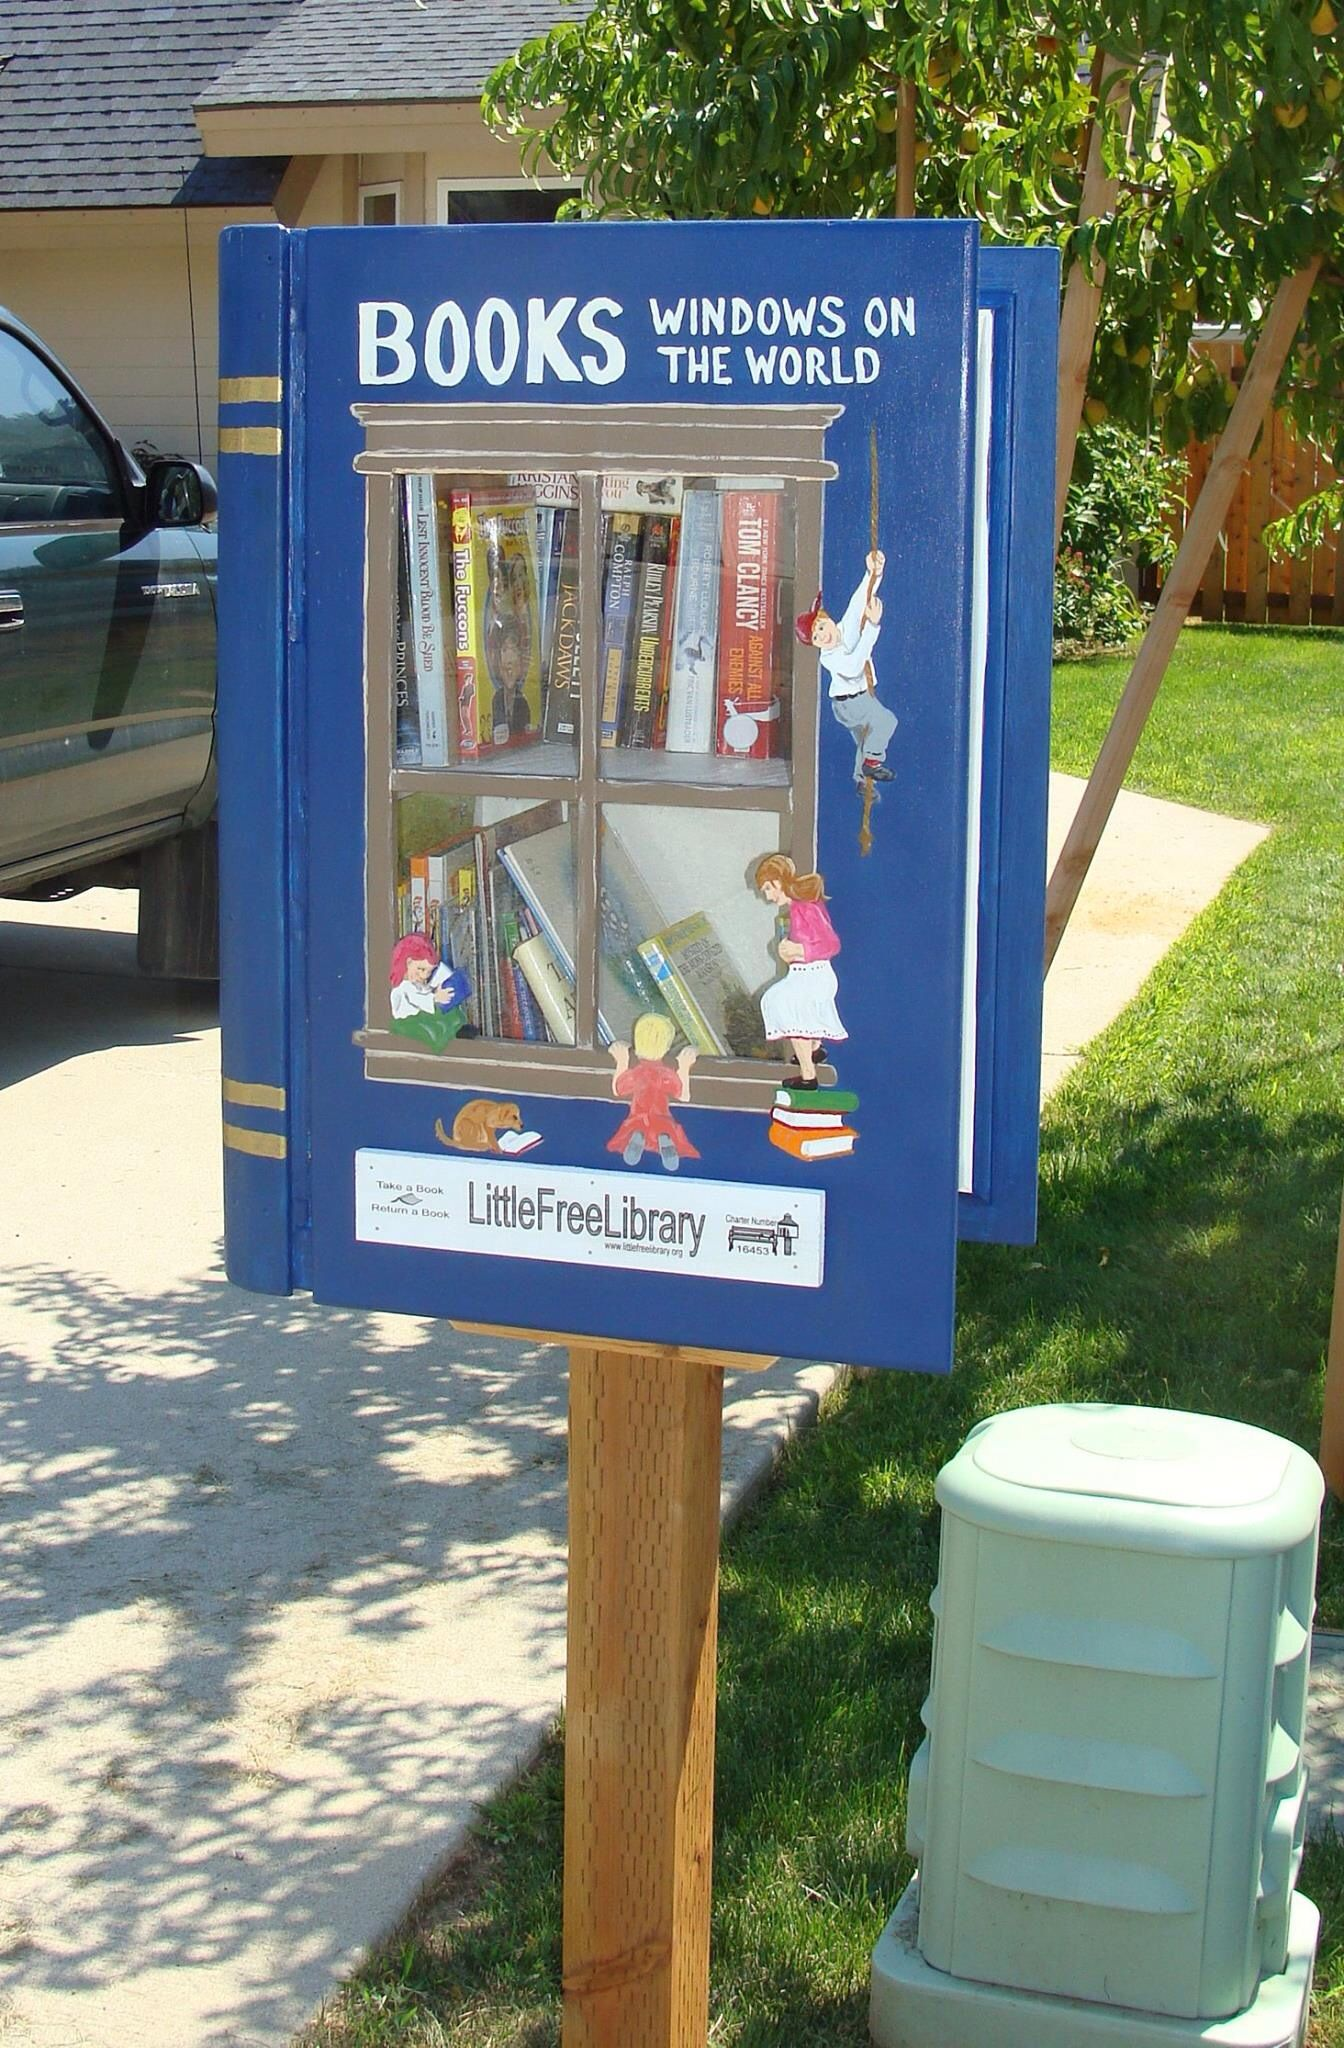 Little Free Library that looks like a book. Open the book